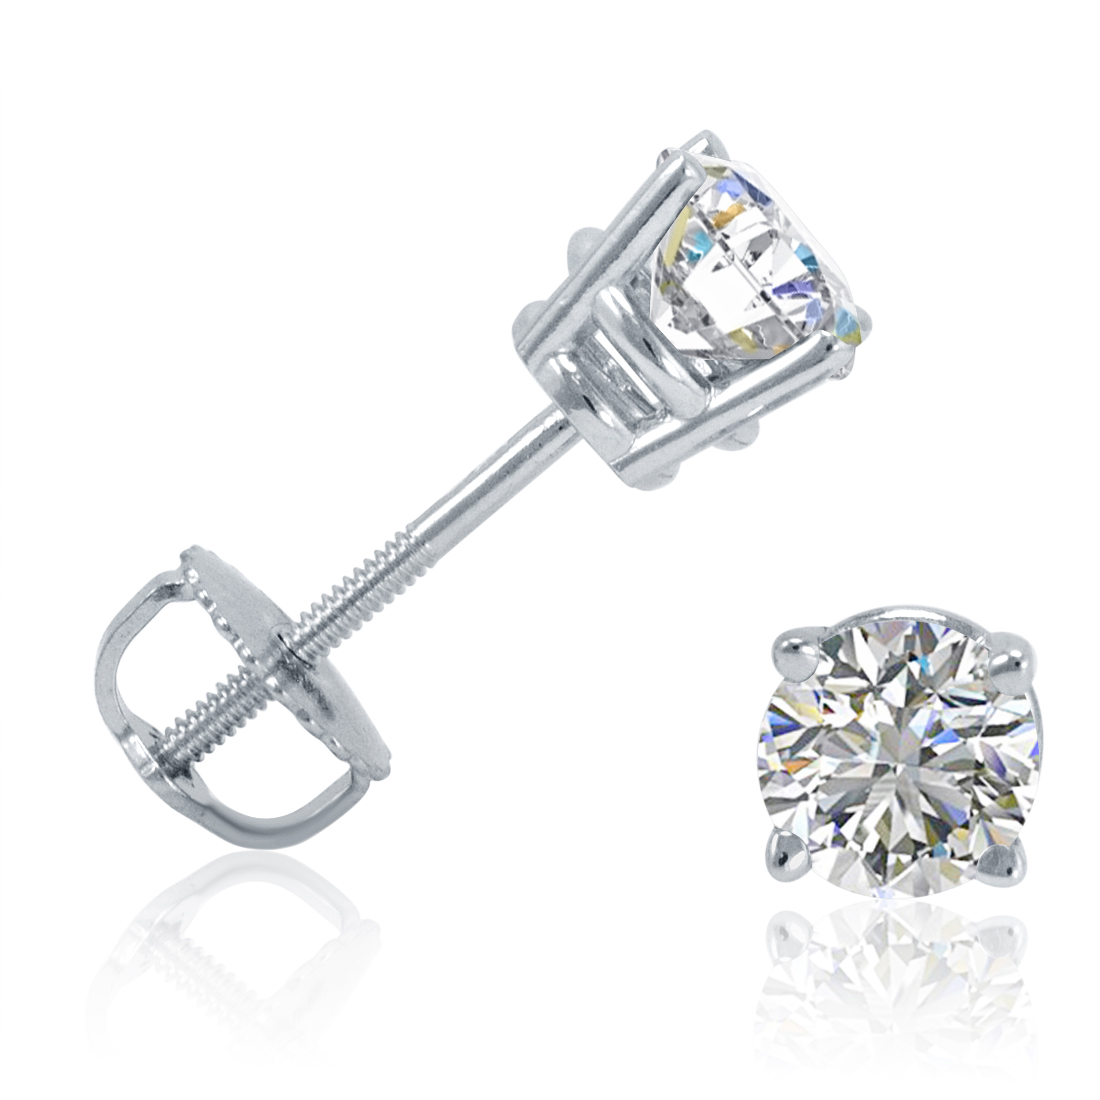 1/2ct Diamond Stud Earrings in 14K White Gold Screw-Back